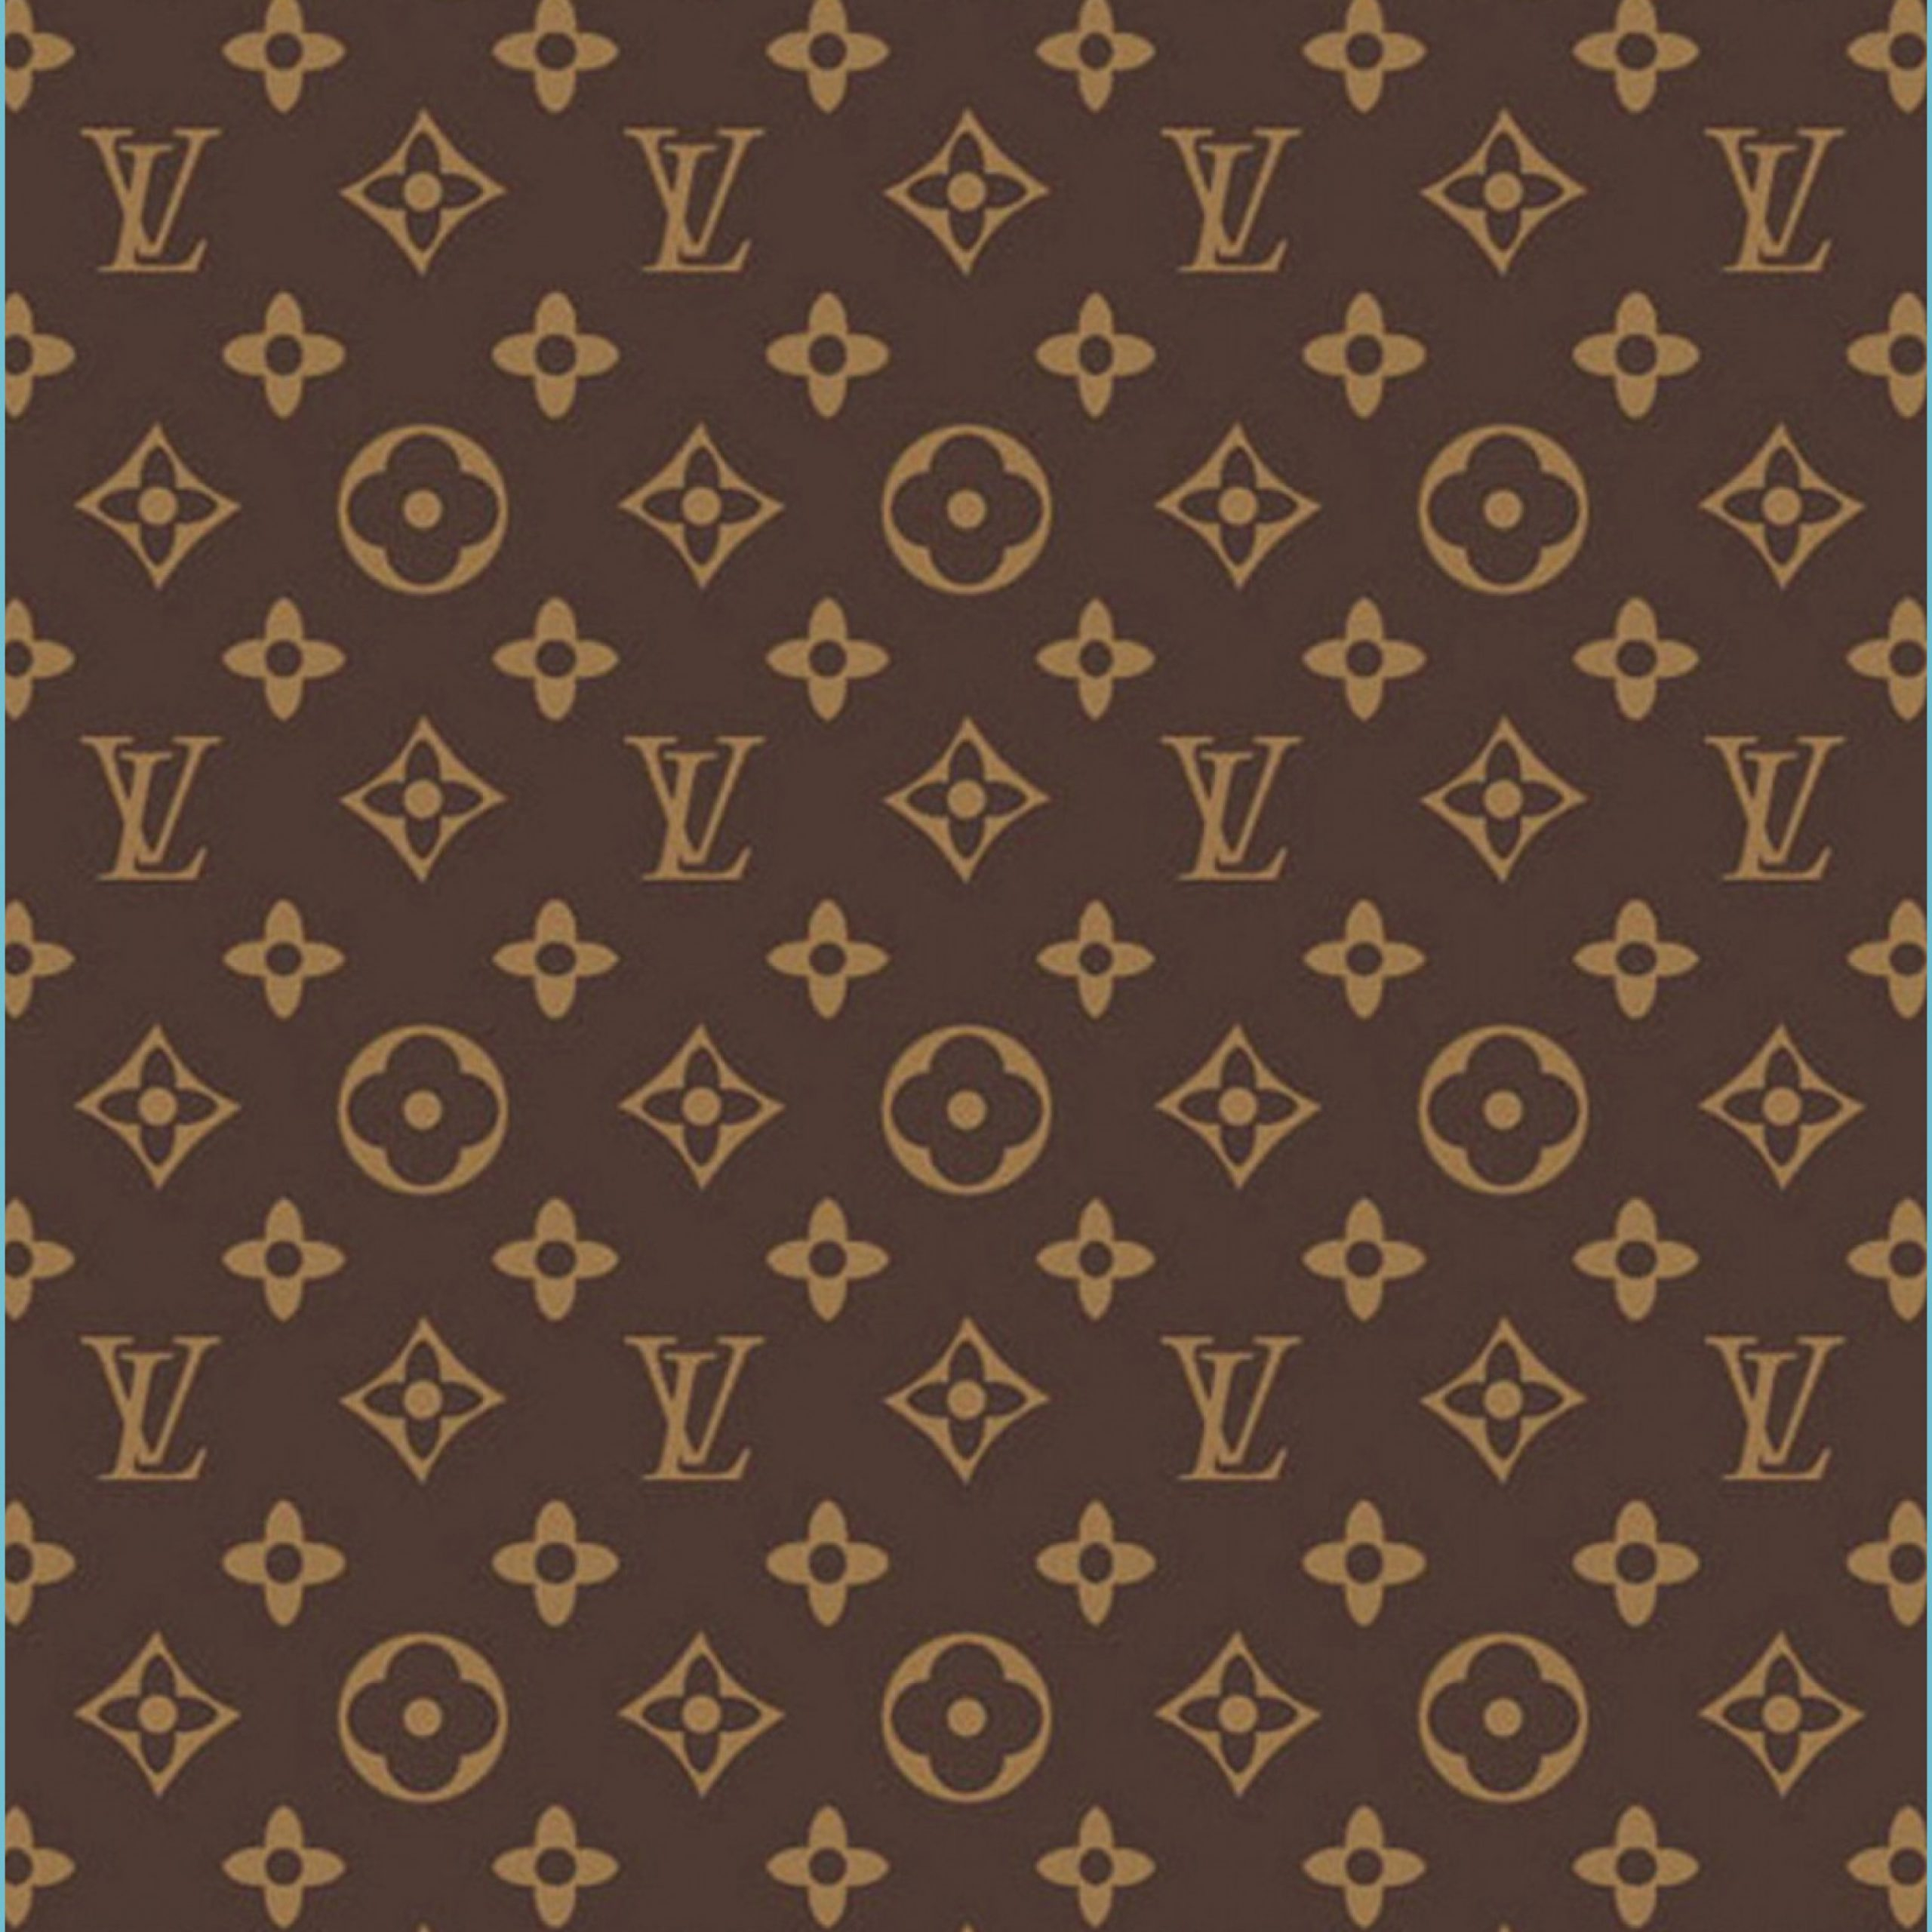 louis vuitton wallpaper 13 lit it up rose gold louis vuitton wallpaper